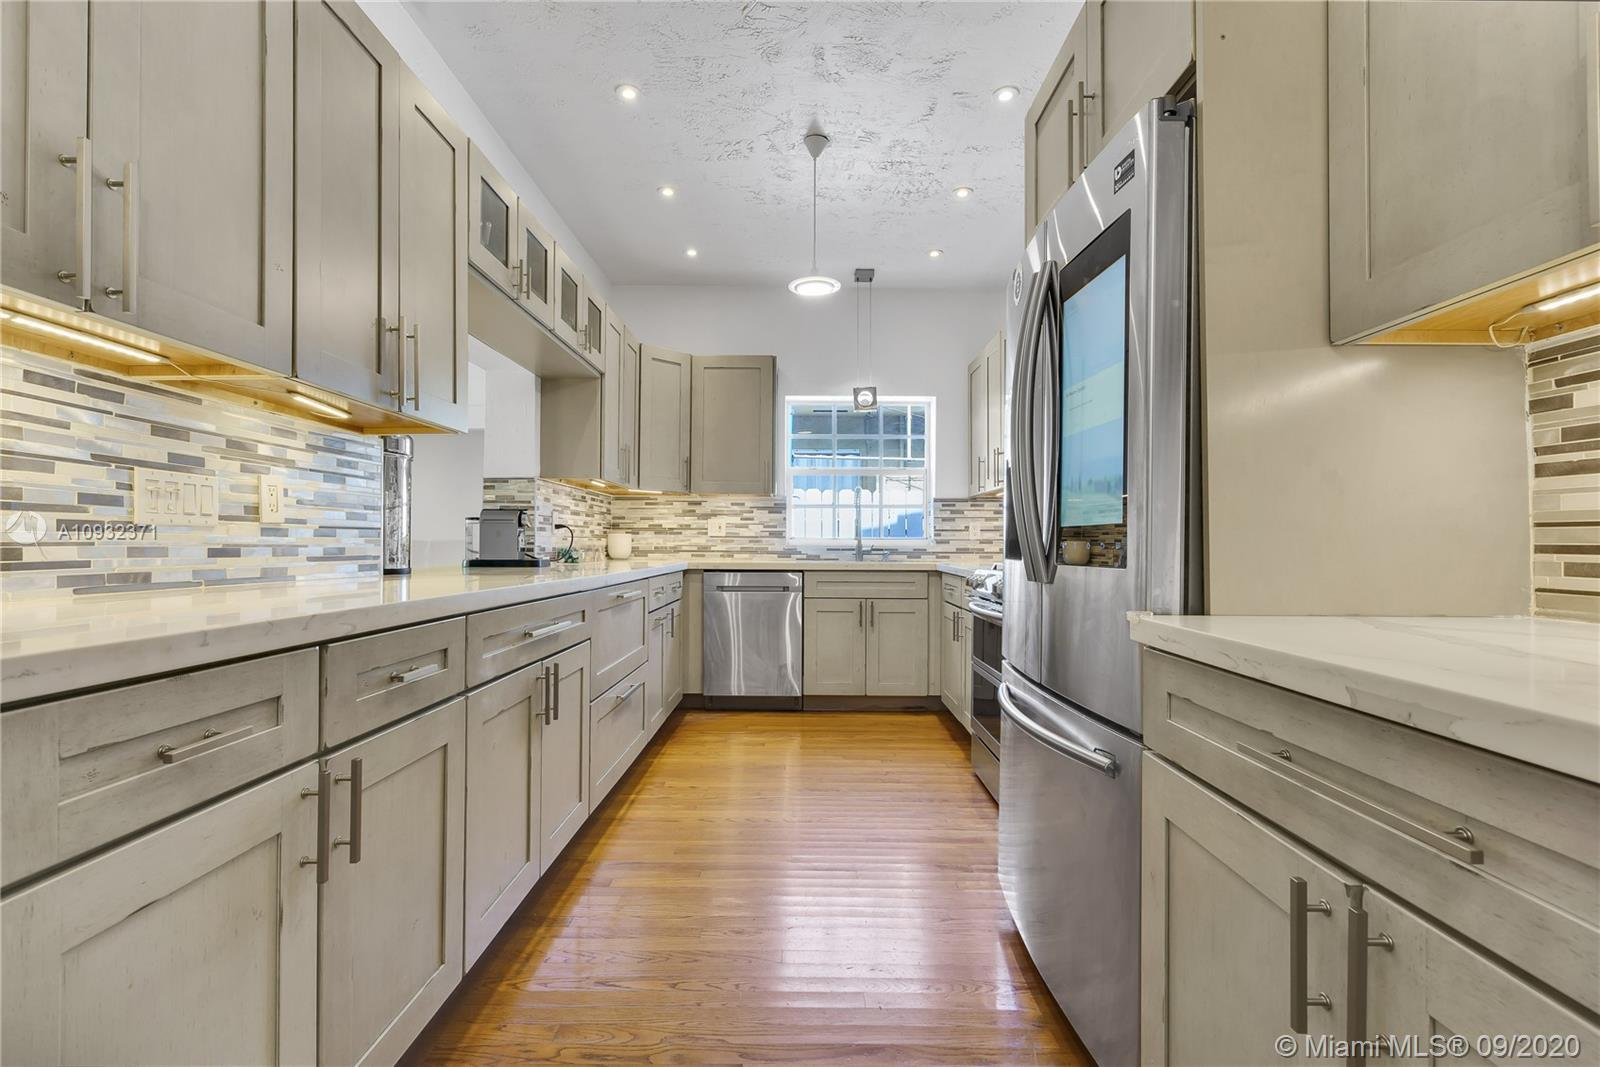 Beautiful, warm and cozy Carlos Schoeppl's masterpiece in the heart of Miami Beach. This 4 bedroom 3